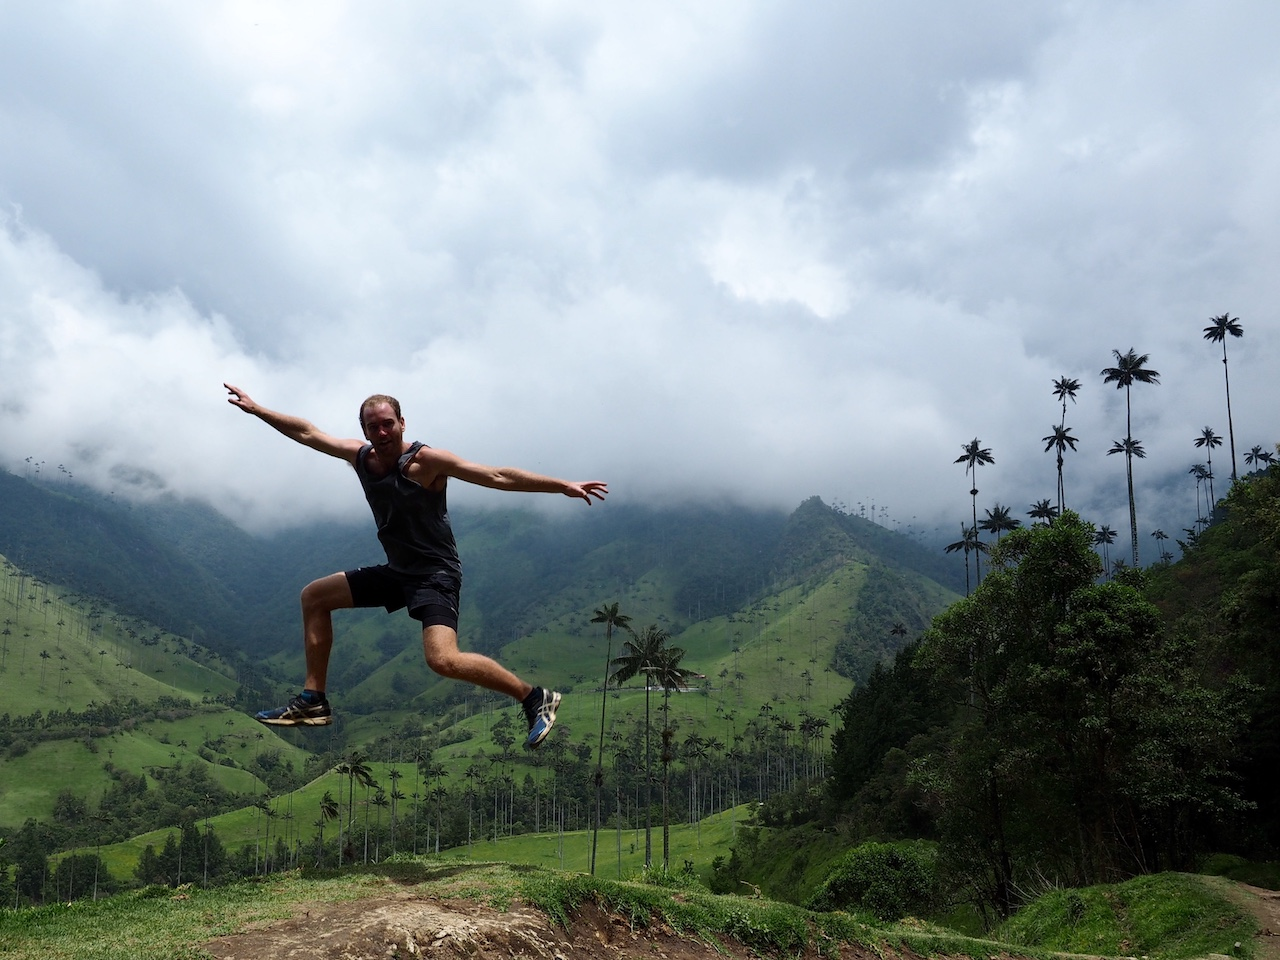 Jumping around in the palms. Palms litter the valley literally as far as the eye can see. The longer route brings you down above the valley, letting you enjoy all the area has to offer!